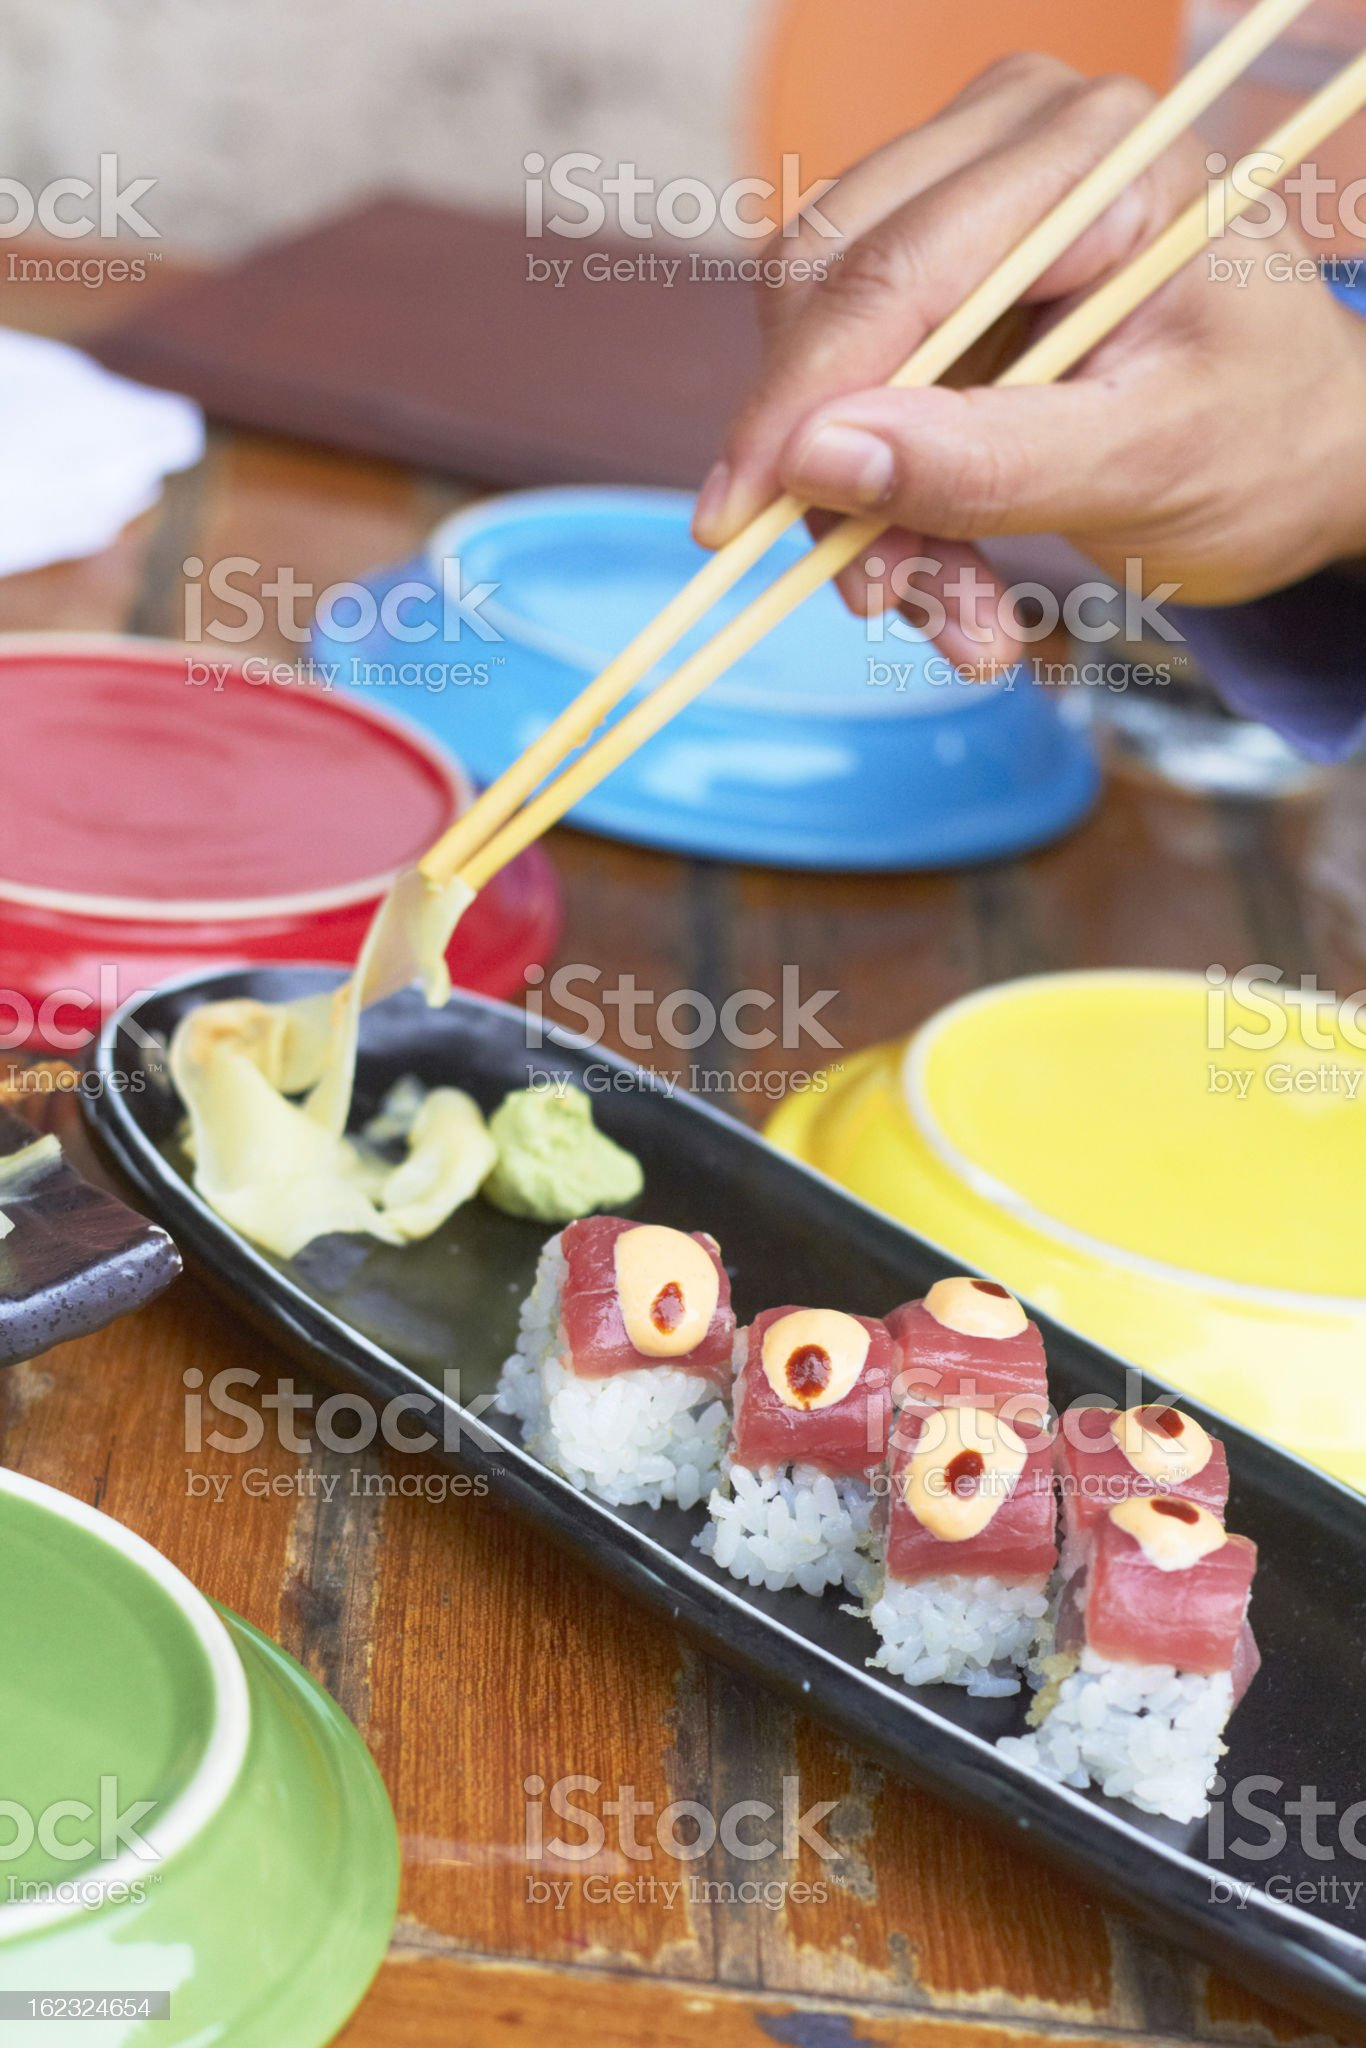 Sushi Roll royalty-free stock photo